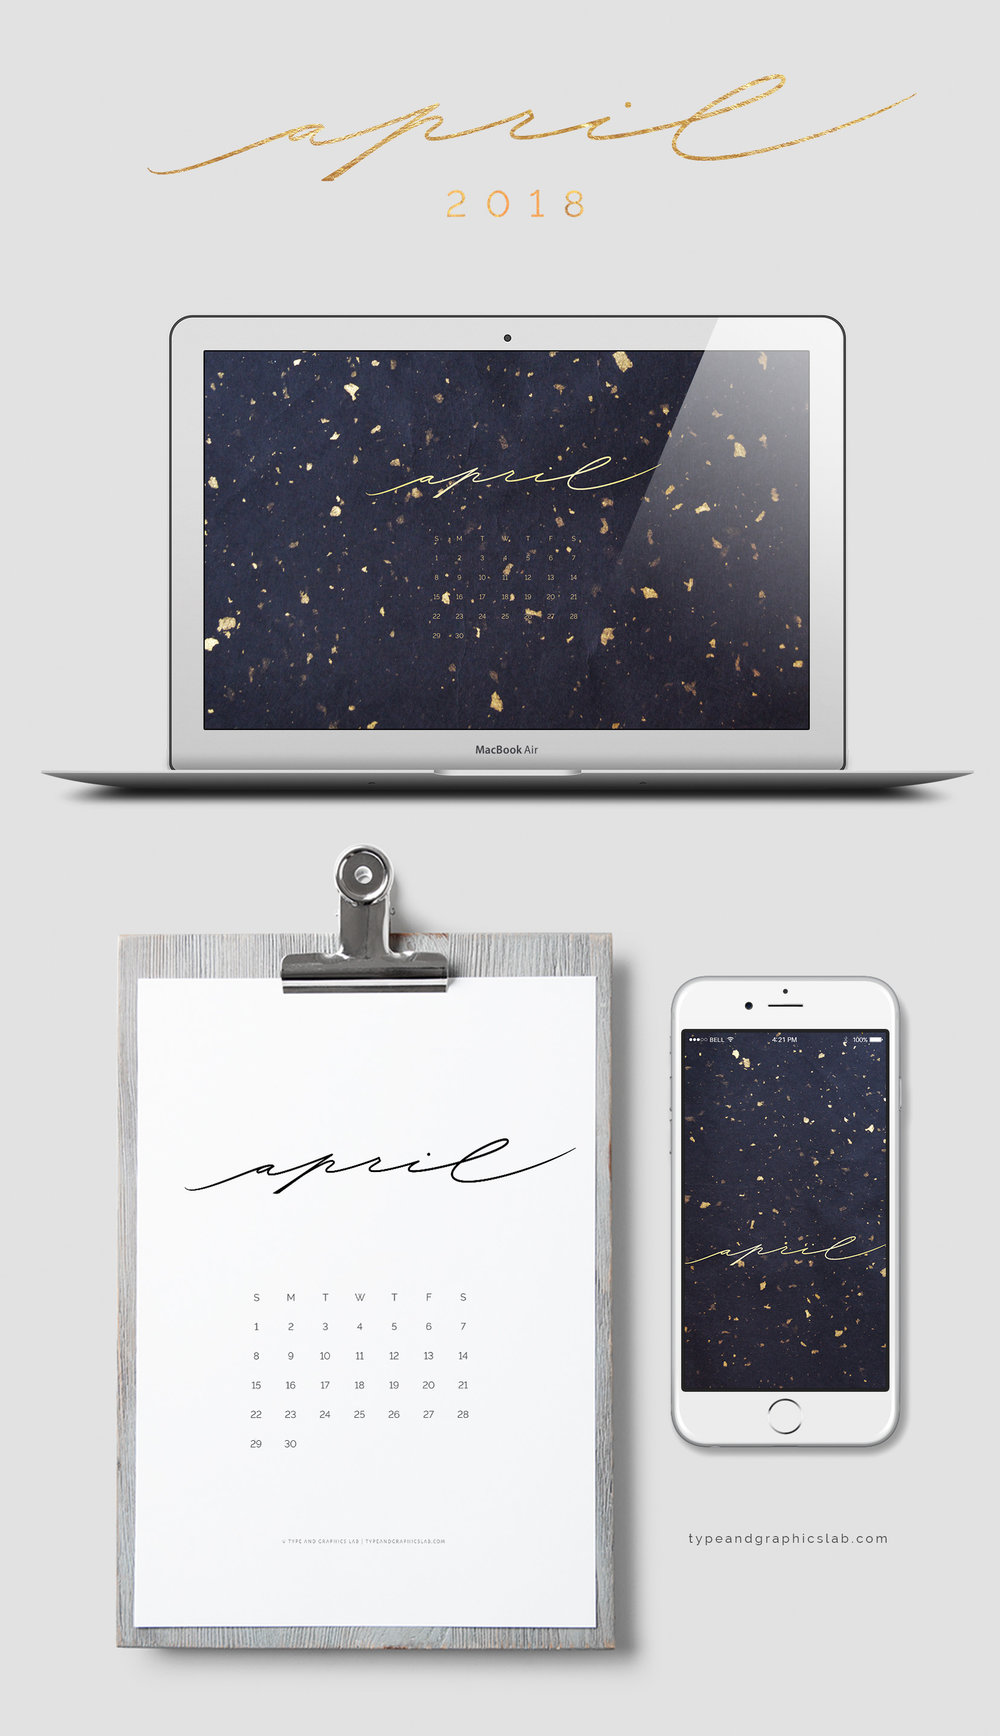 Download free desktop, mobile, and printable calendar for April 2018 | © typeandgraphicslab.com | For personal use only